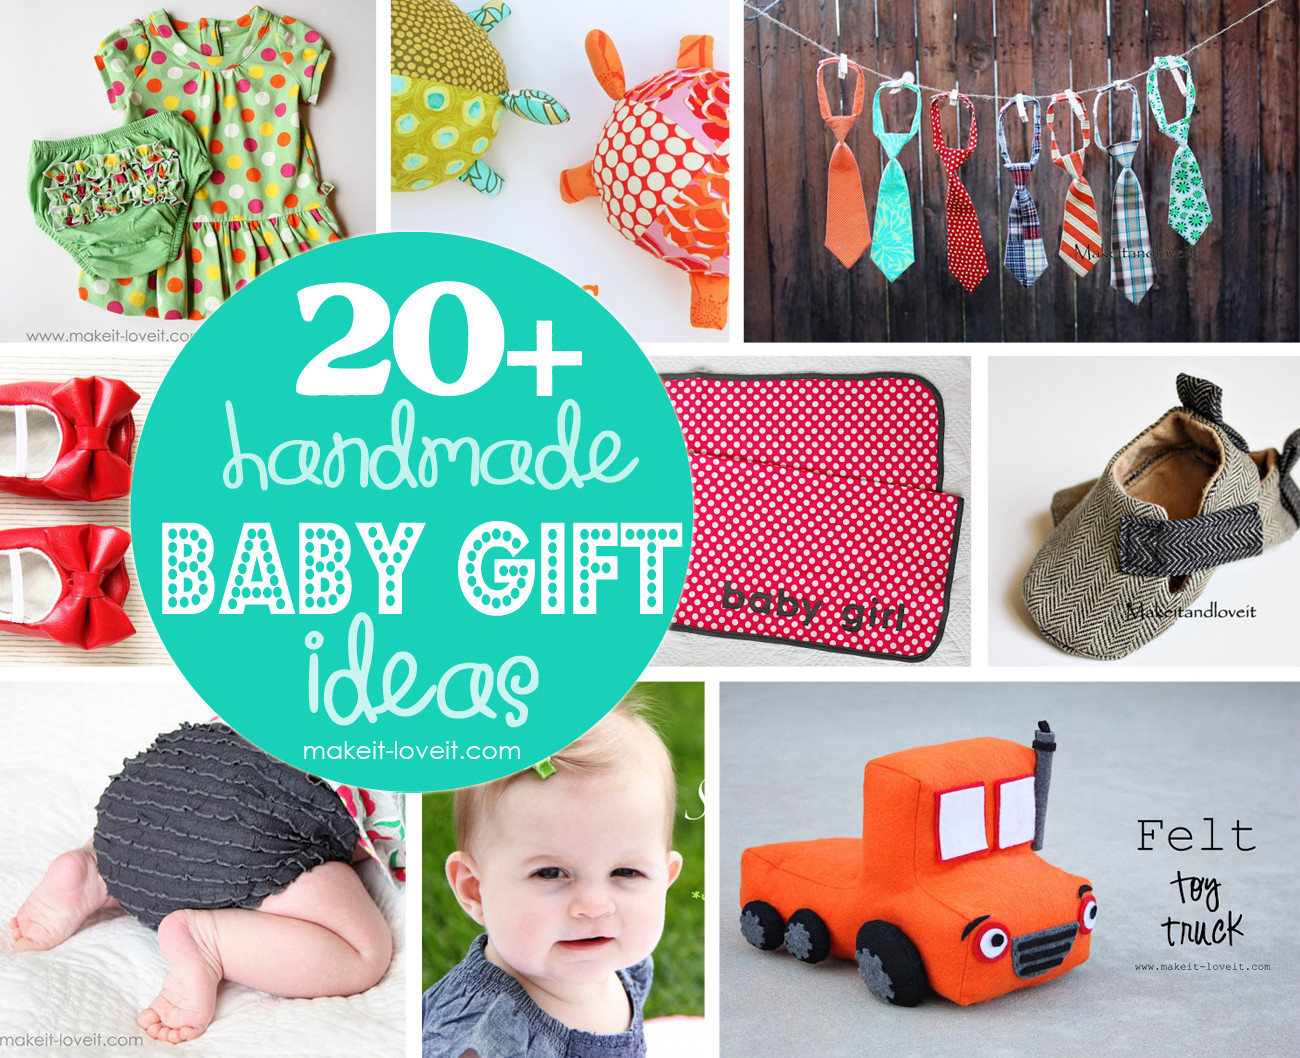 Best ideas about Homemade Baby Gift Ideas . Save or Pin 20 Handmade Baby Gift Ideas Now.